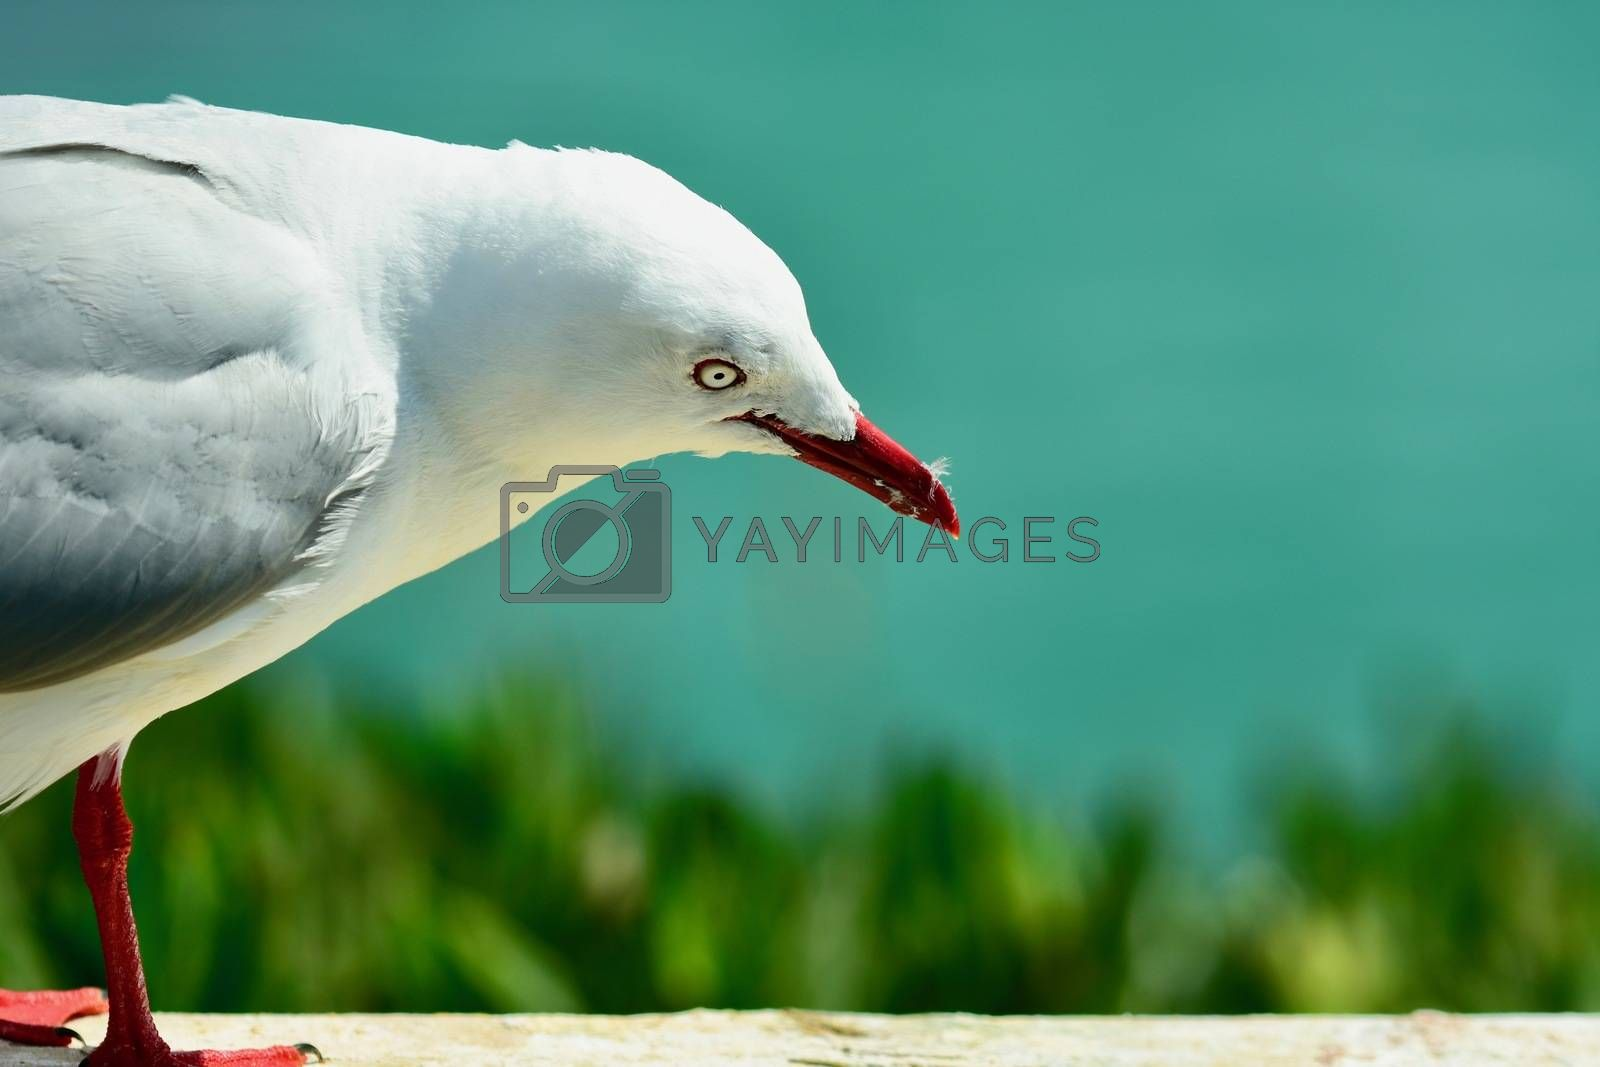 A close-up photo of a bird; mature red-beaked sea gull in natural environment